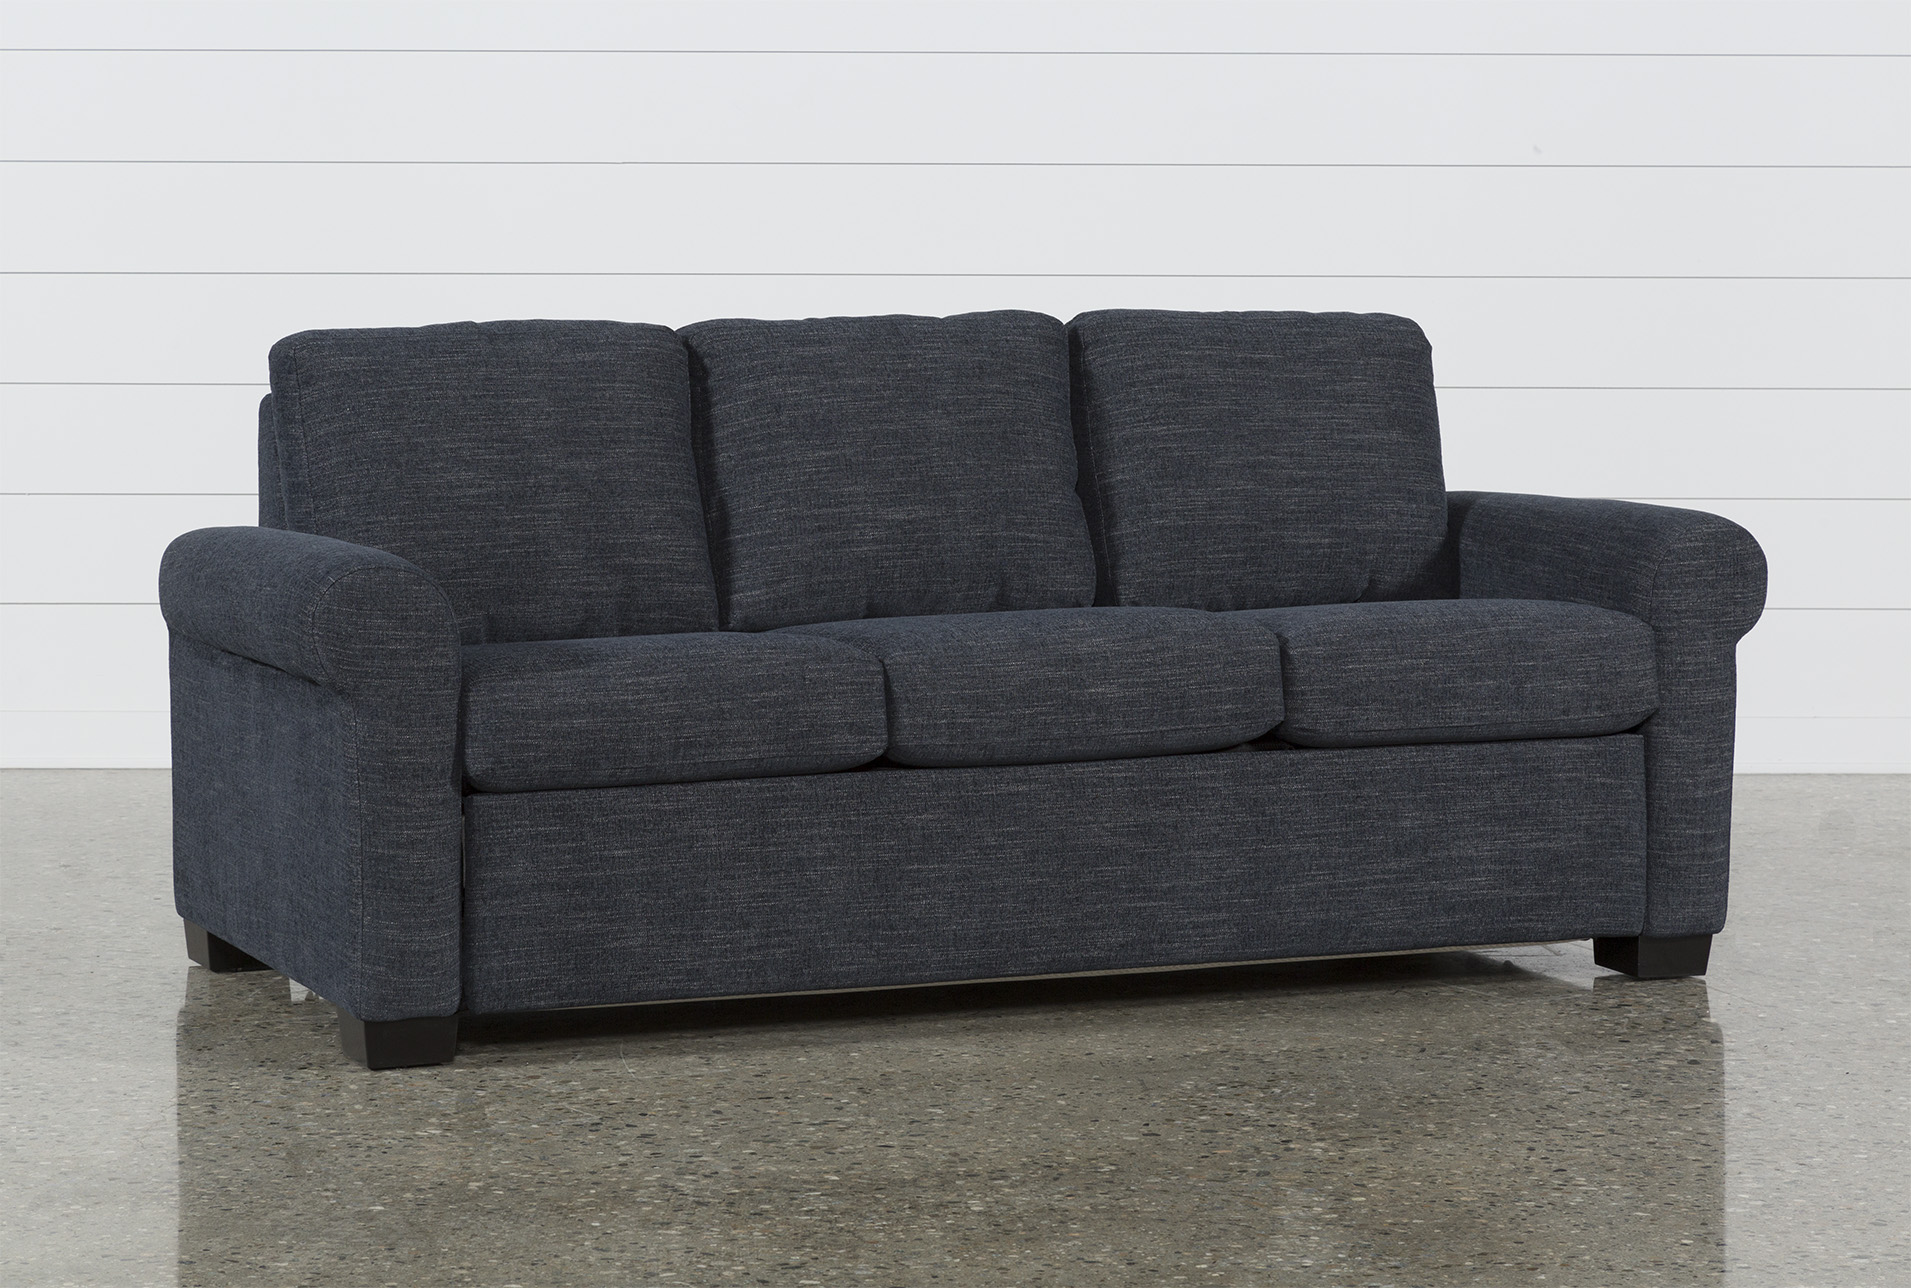 best queen sleeper sofa for everyday use Images Gallery. sofa beds sleeper sofas free assembly with delivery living spaces rh livingspaces com